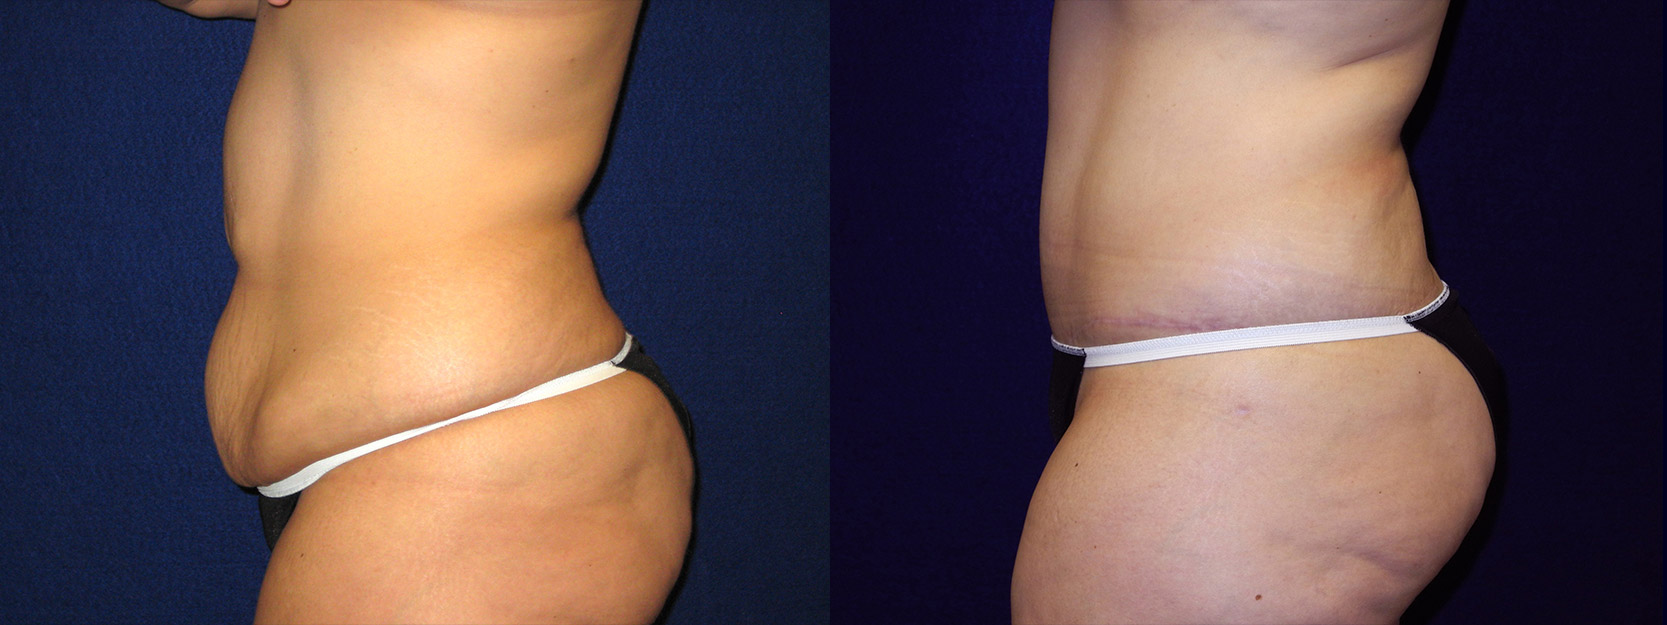 Left Profile View - Abdominoplasty After Massive Weight Loss